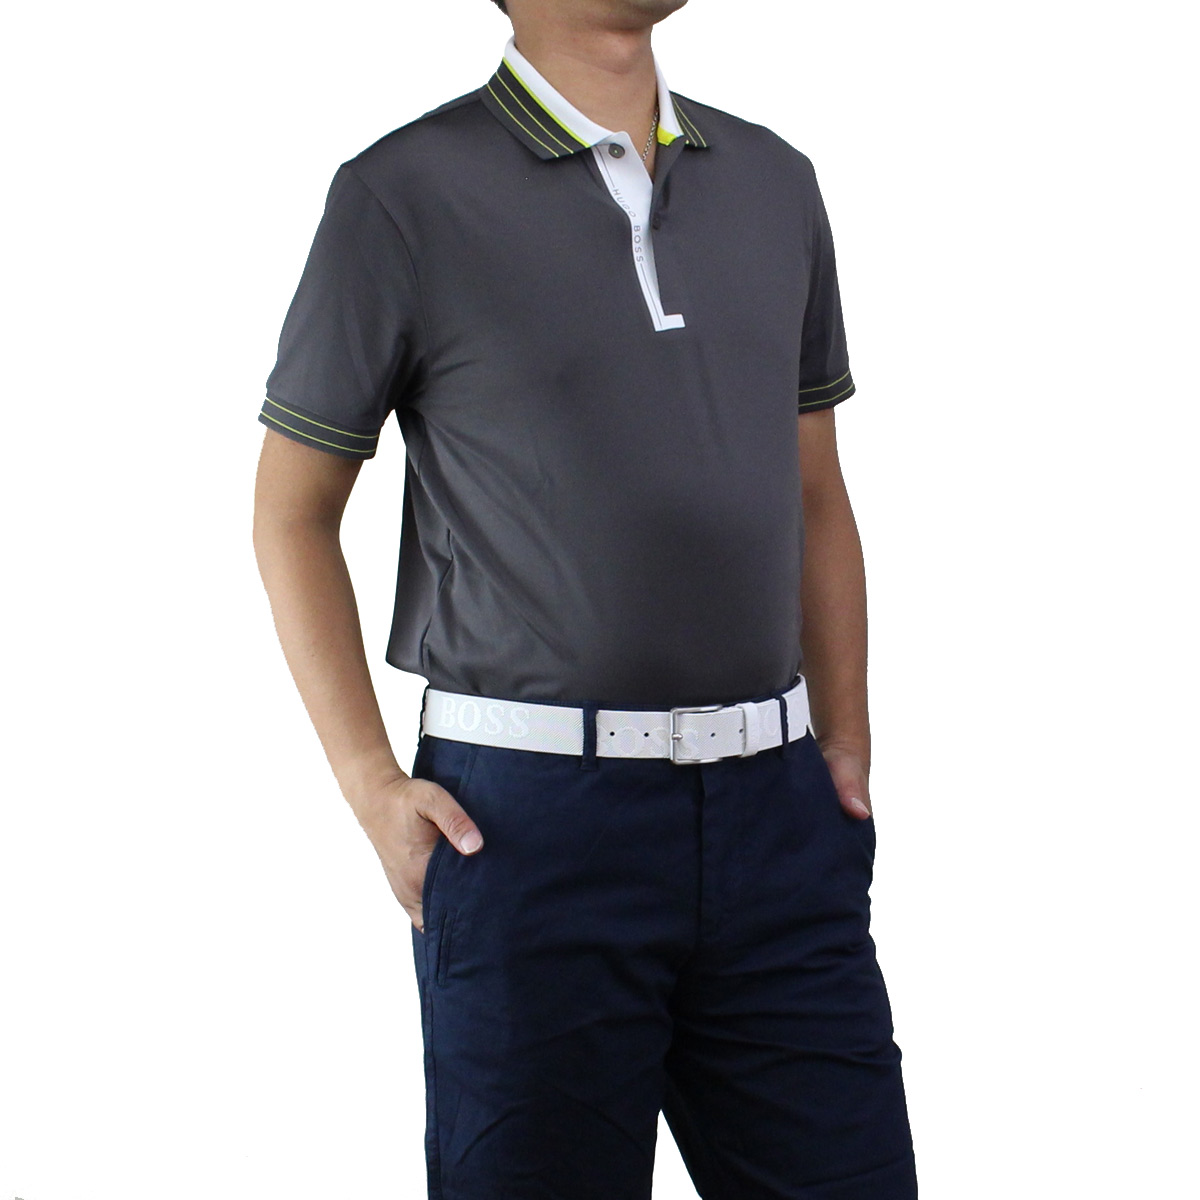 4b3b53d00 Bighit The total brand wholesale: Hugo Boss HUGO BOSS PADDY PRO 1  パディプロポロシャツ short sleeves golf wear 50403515 10208323 037 gray system men ...